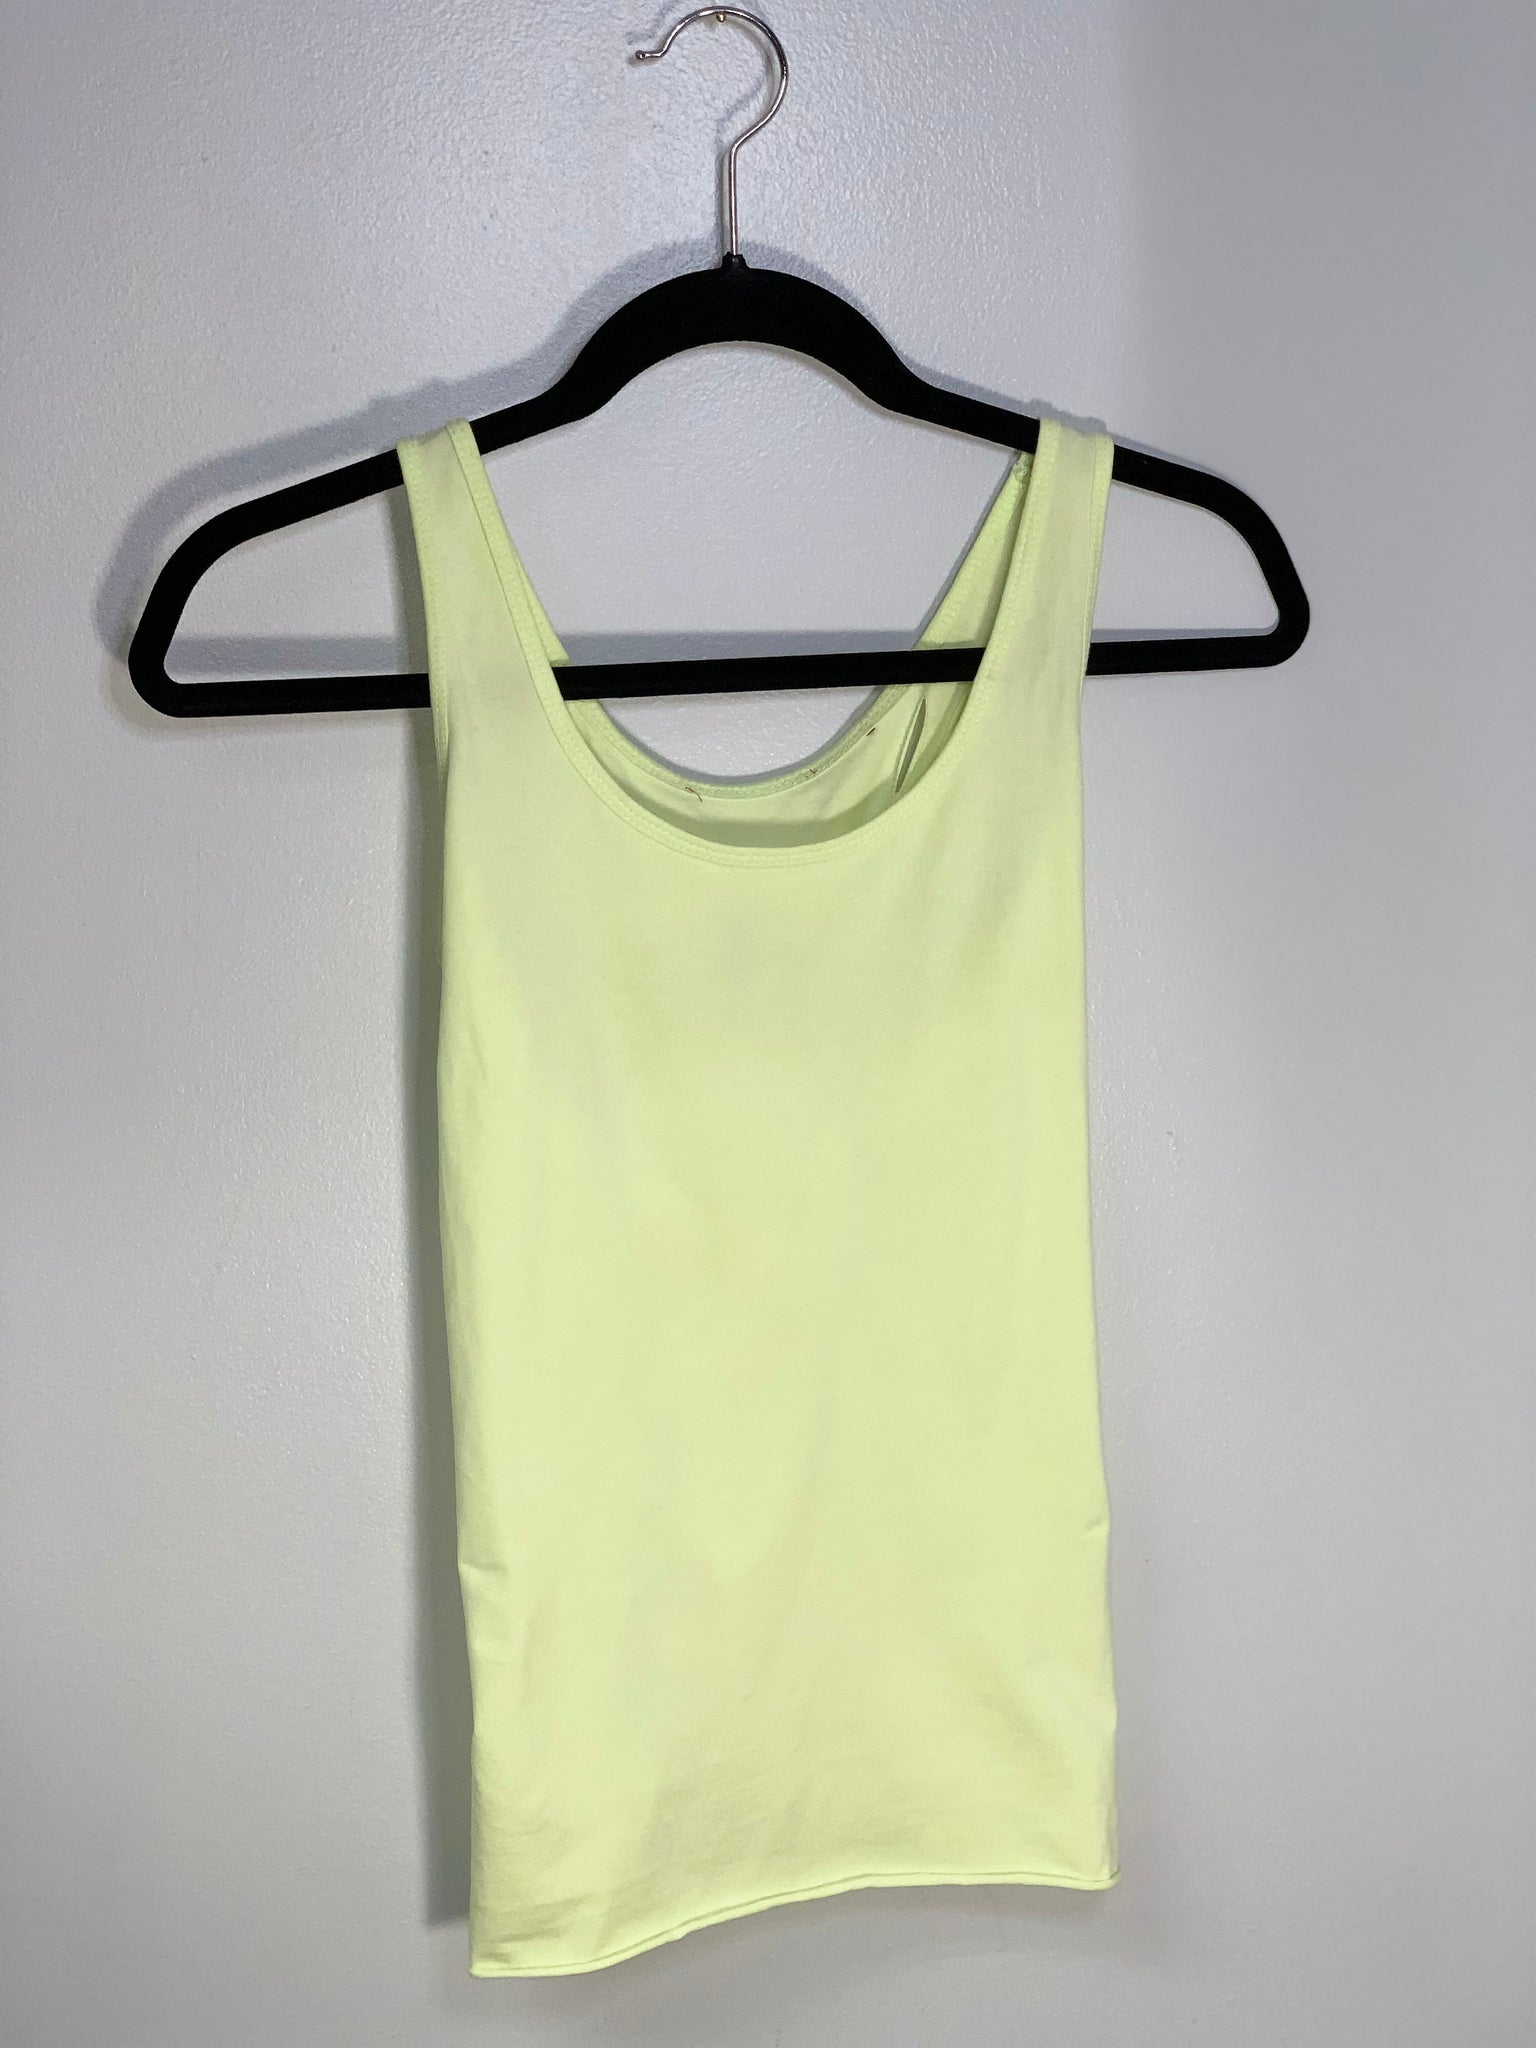 Spiral Design Neon Yellow Tank Cut Shirt by Sniptease